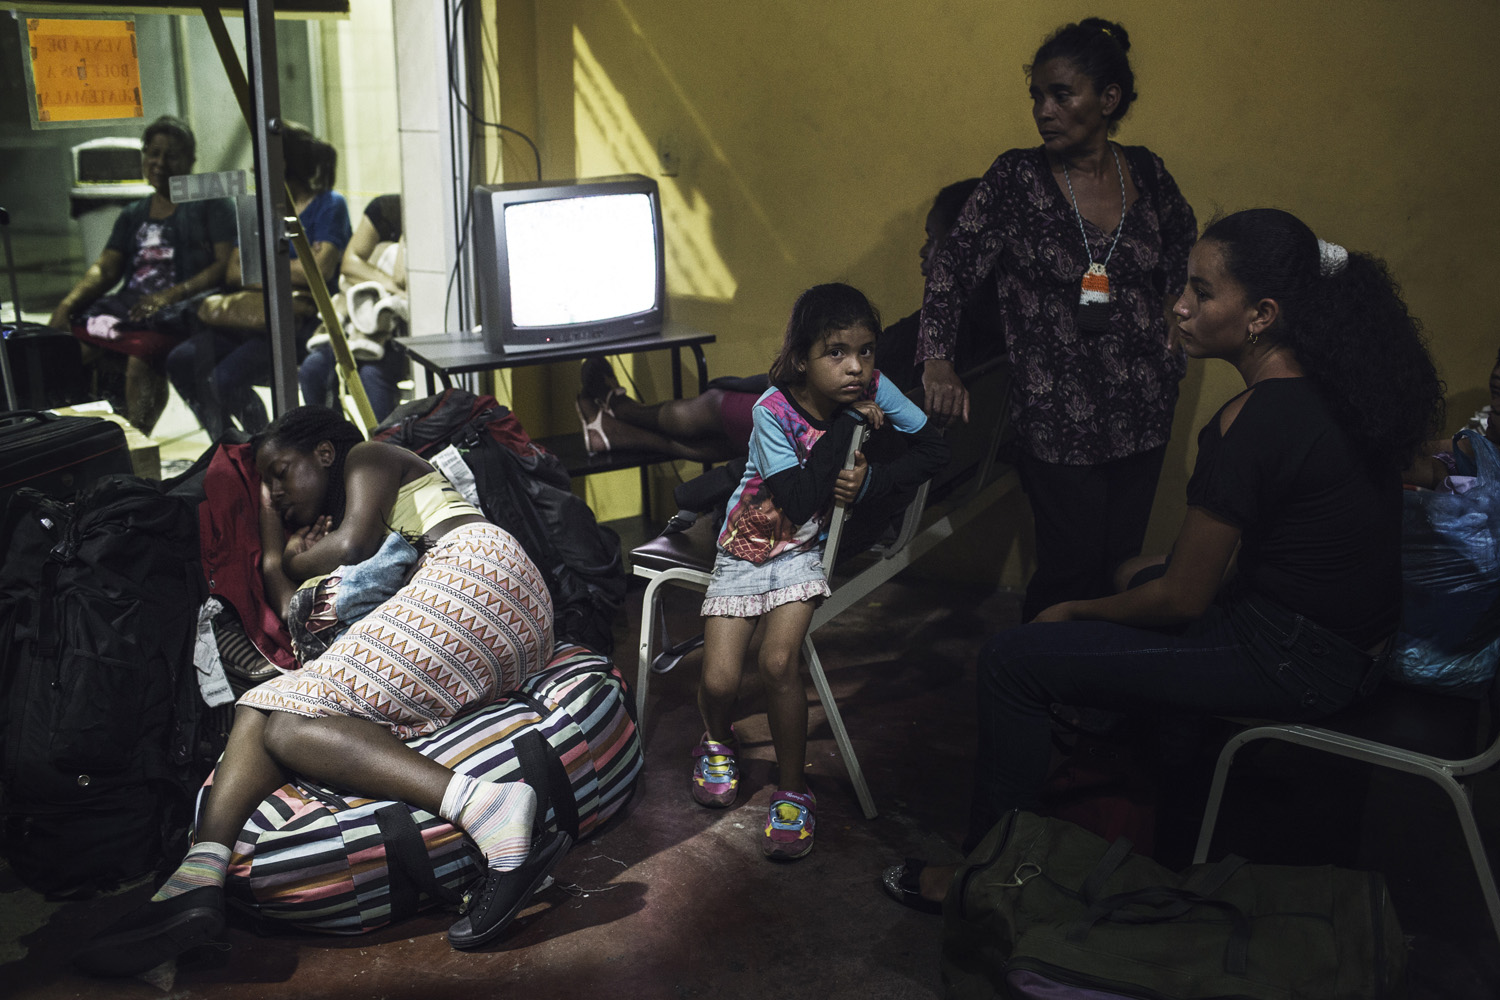 Women and children wait at a bus terminal in San Pedro Sula to begin their journey to the U.S. border